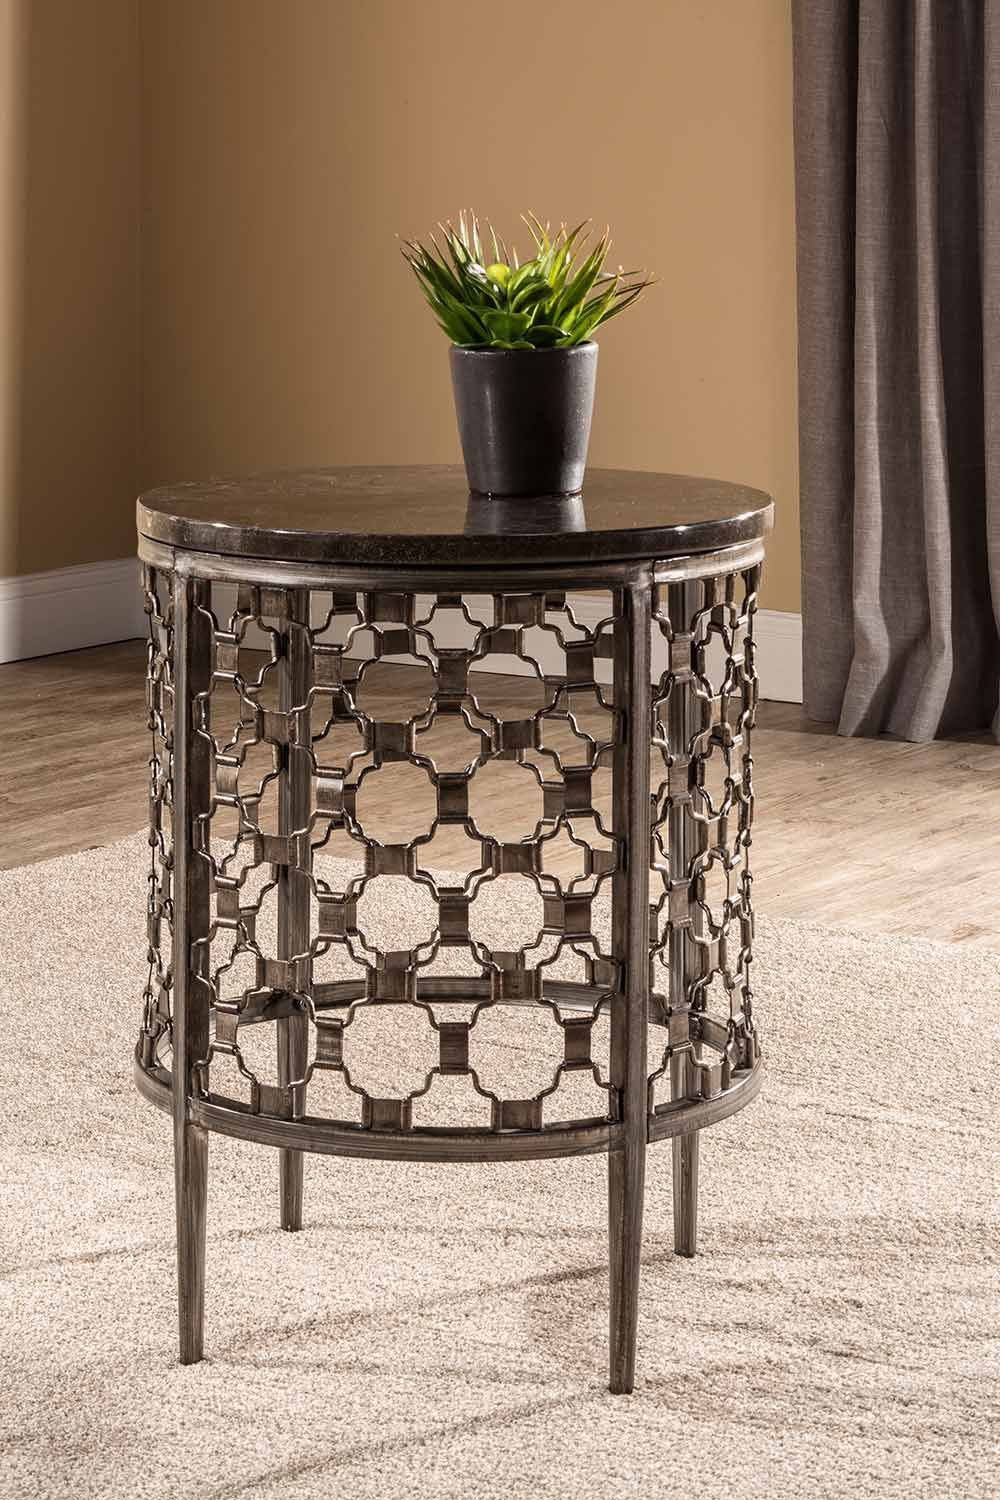 Hillsdale Brescello Round End Table - Charcoal/Blue Stone